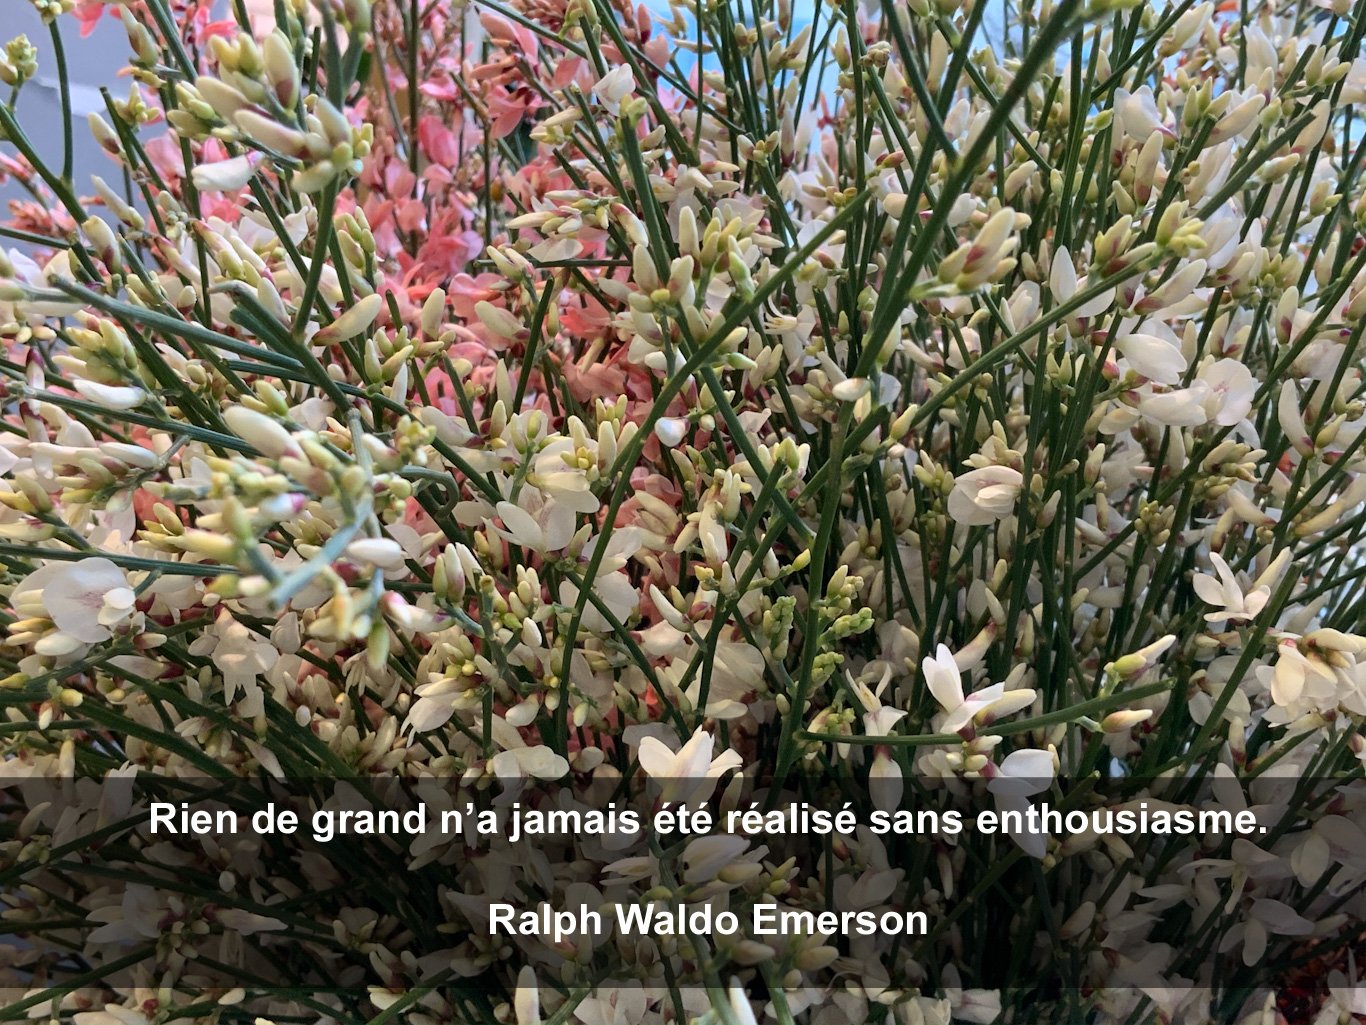 Citation d'Emerson sur l'enthousiasme, fond fleuri